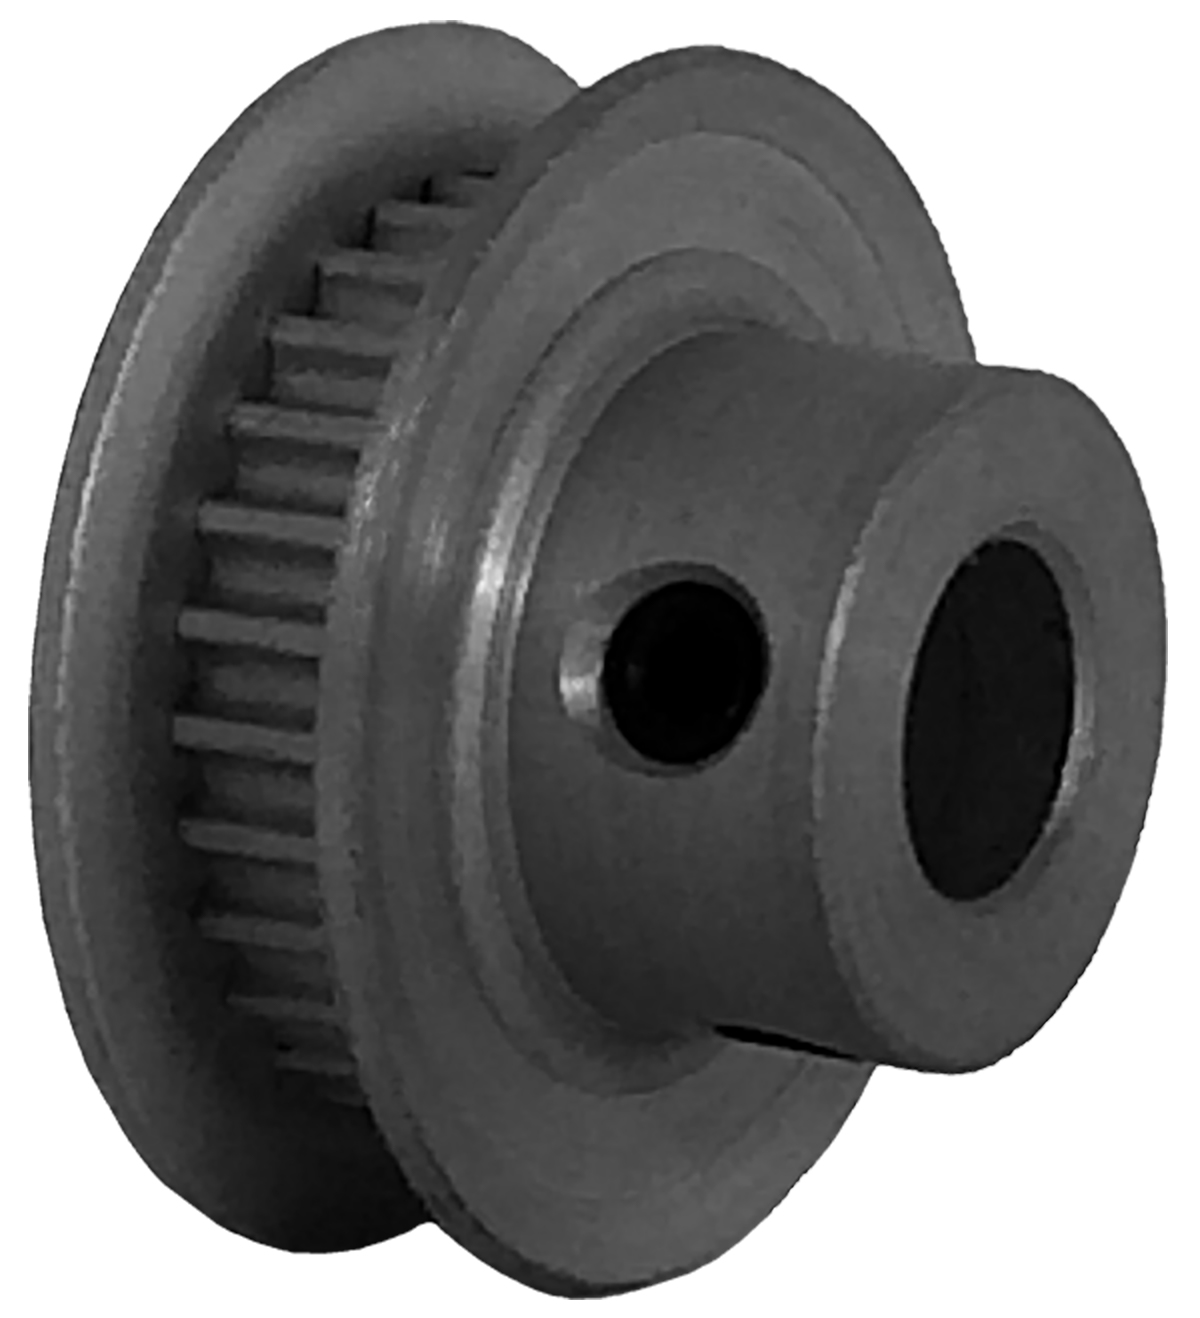 28-2P03-6FA3 - Aluminum Powerhouse® Pulleys